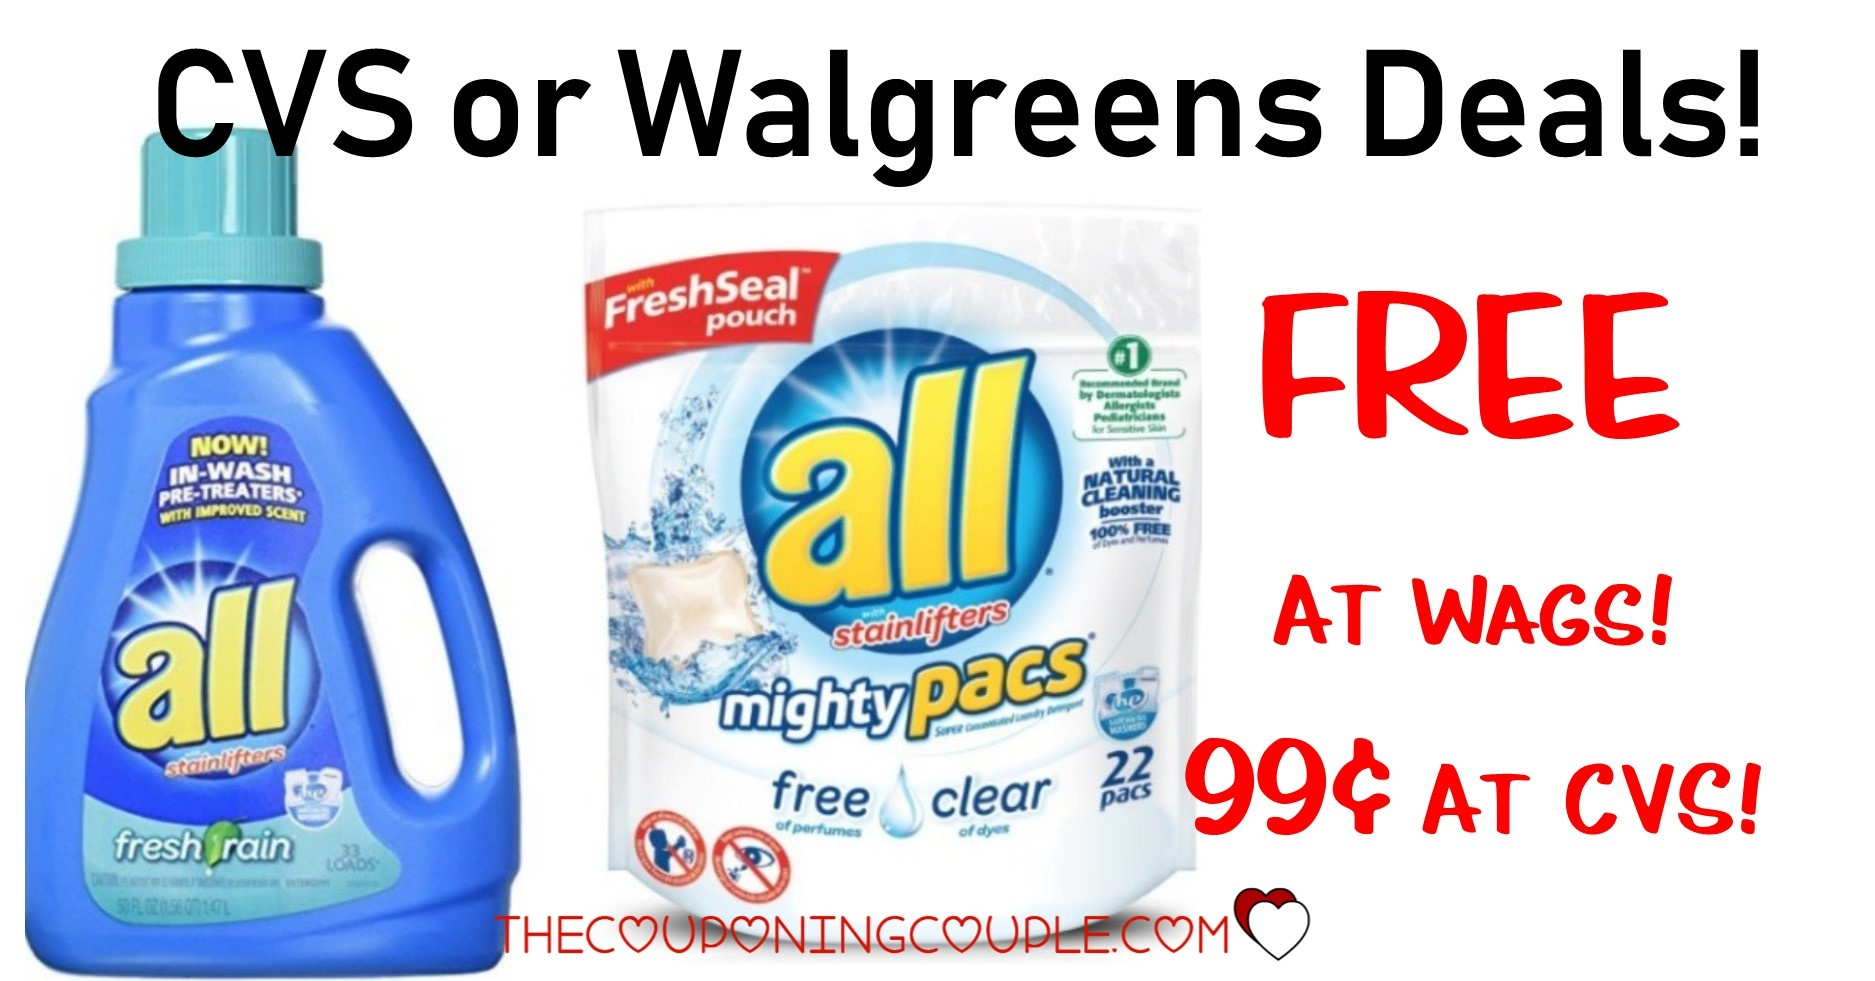 All Laundry Detergent Deal - Free At Walgreens Or $0.99 At Cvs! - Free All Detergent Printable Coupons